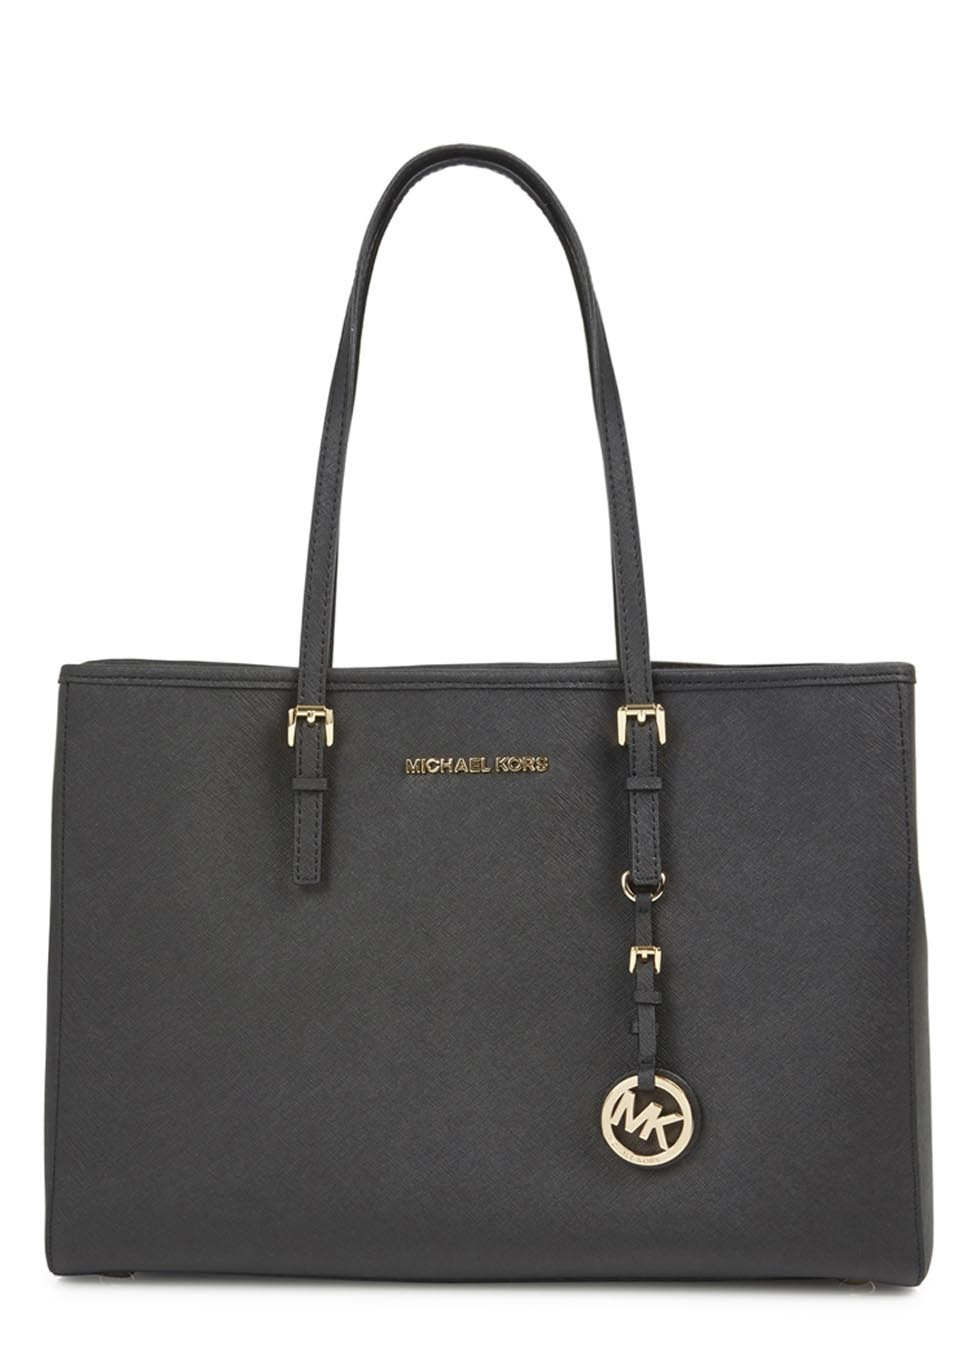 06ad332b9778 Black Saffiano Leather Bag Michael Kors | Stanford Center for ...